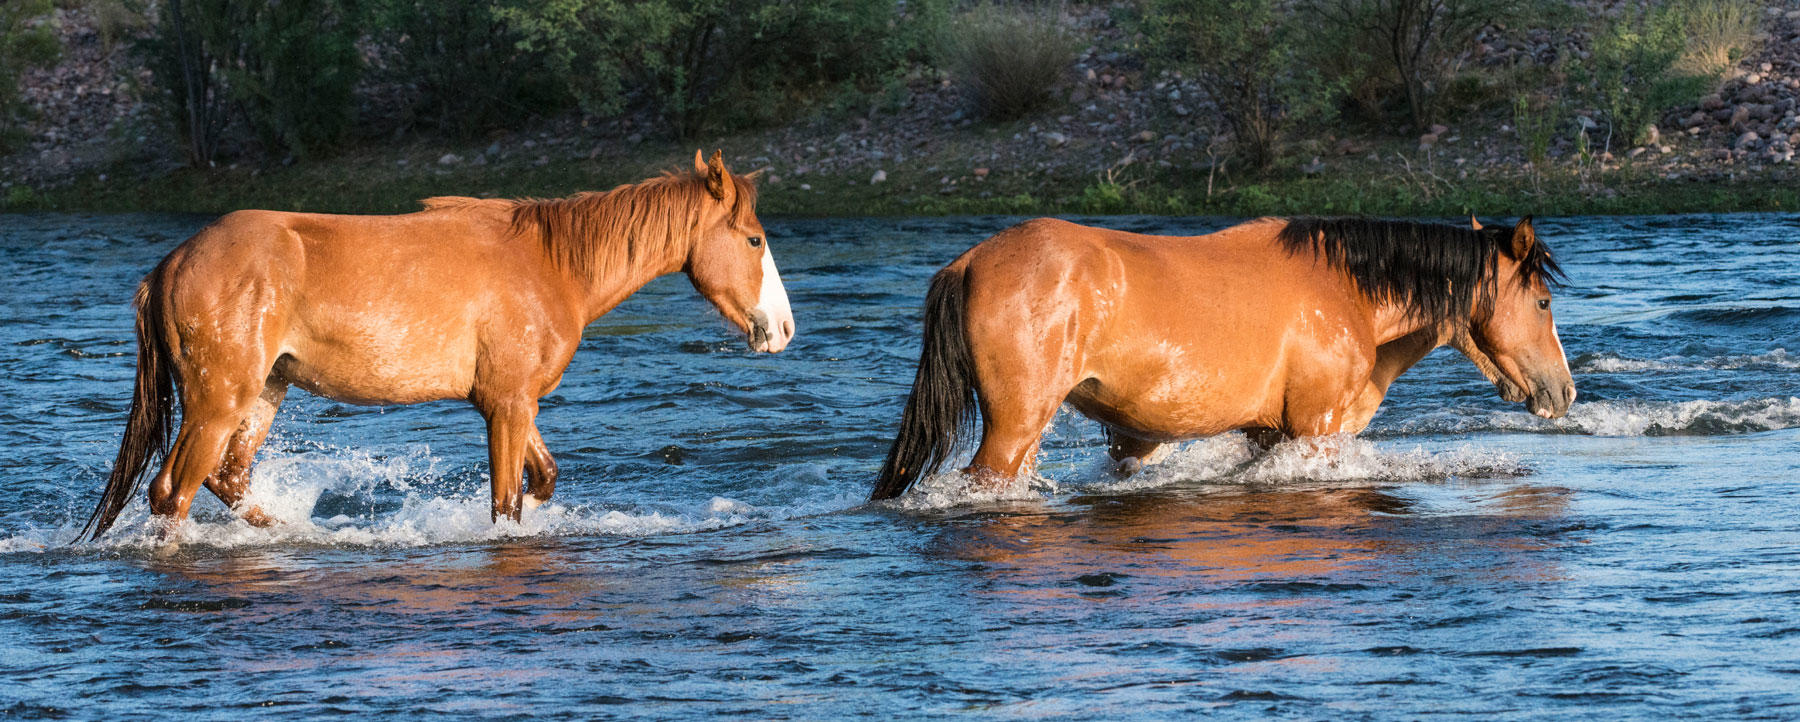 Wild horse river crossing